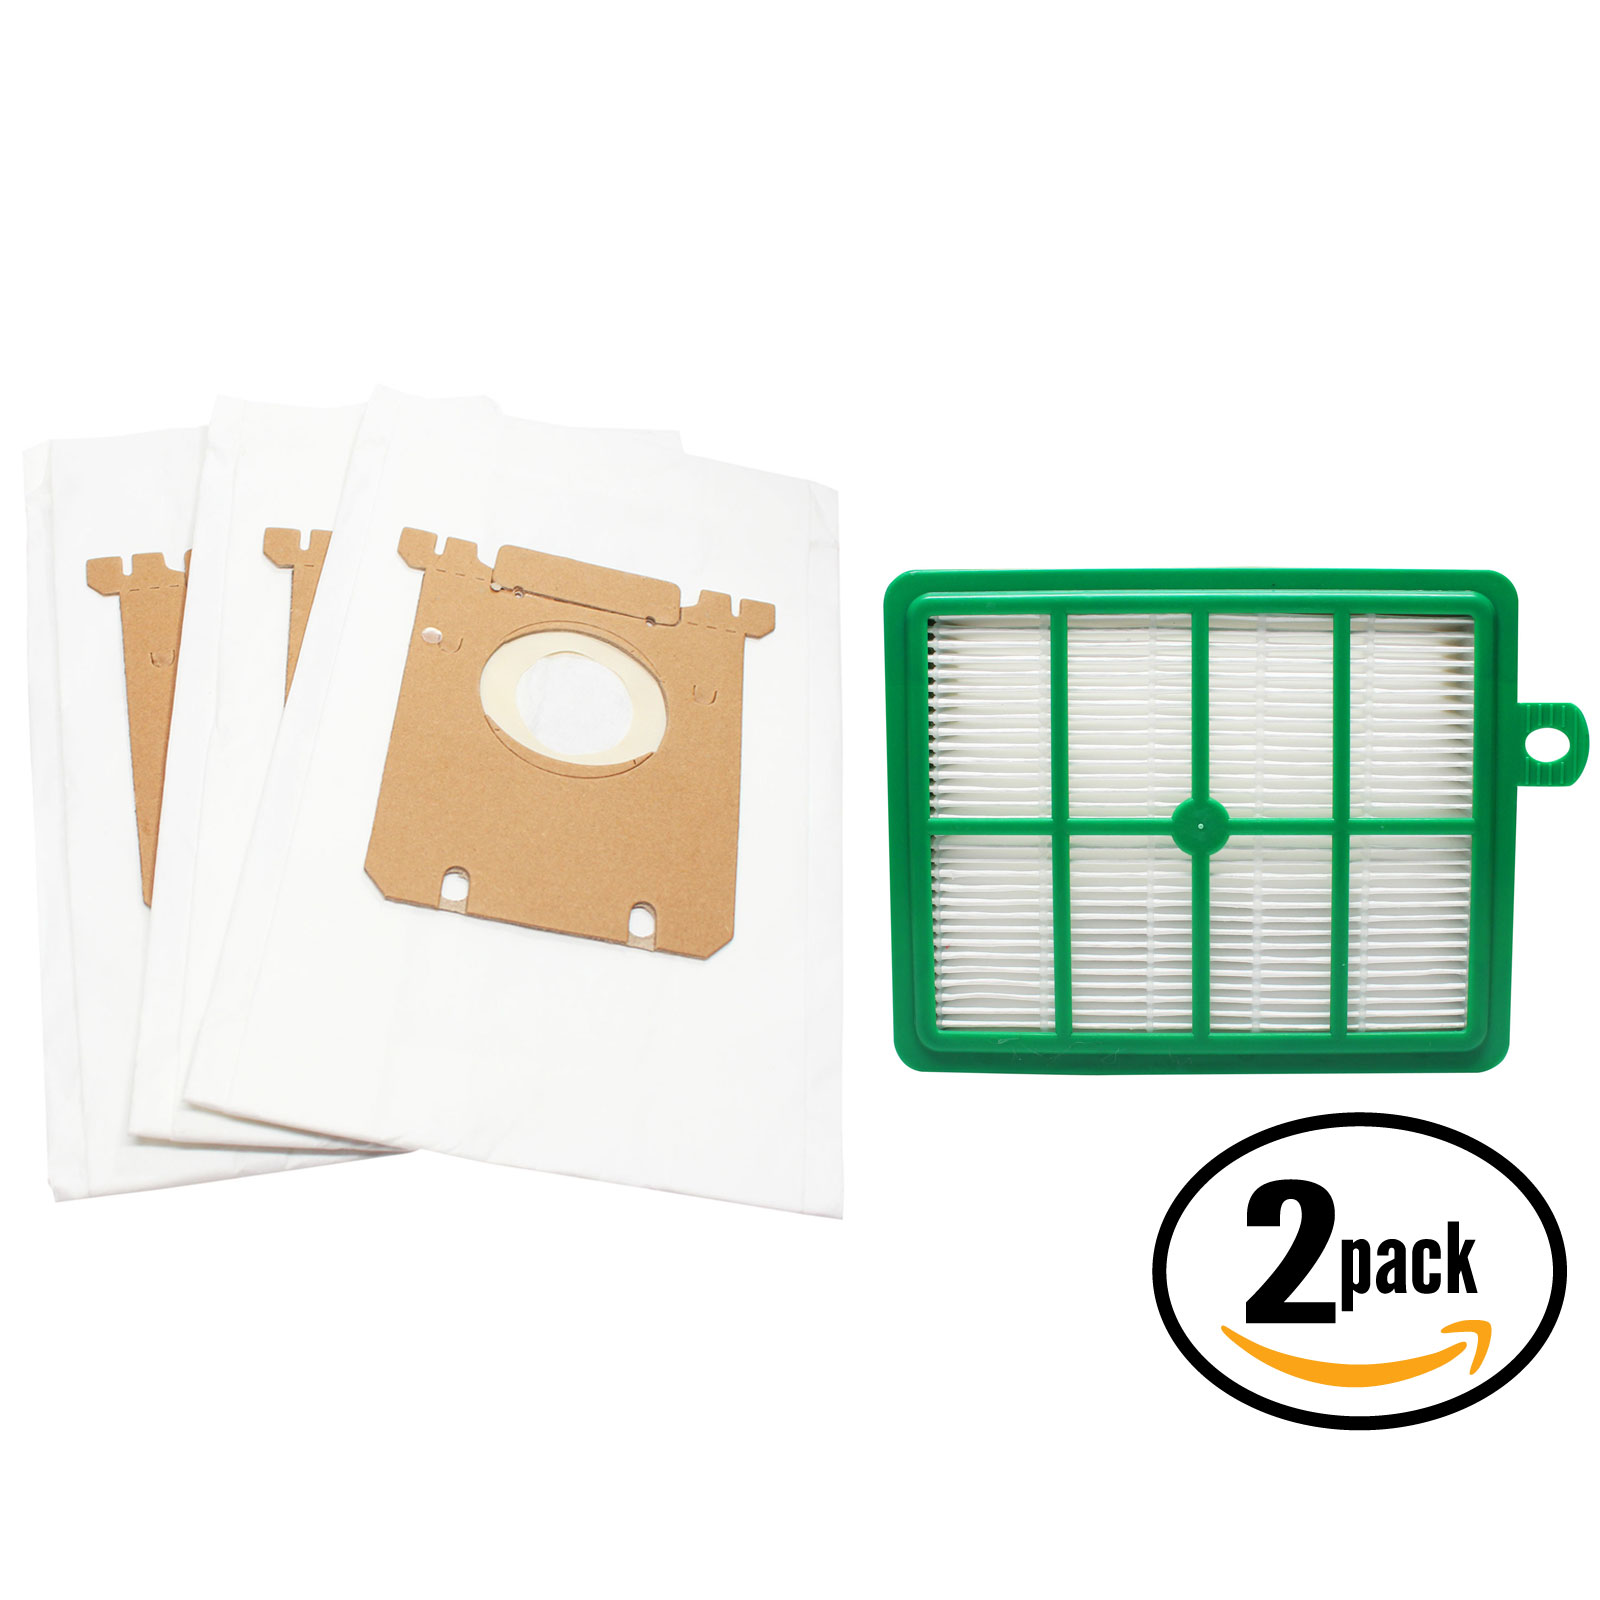 6 Replacement Electrolux EL6988E Oxygen Vacuum Bags & 2 Filter - Compatible Electrolux S-Bag Vacuum Bag & EL012B Filter - image 4 of 4